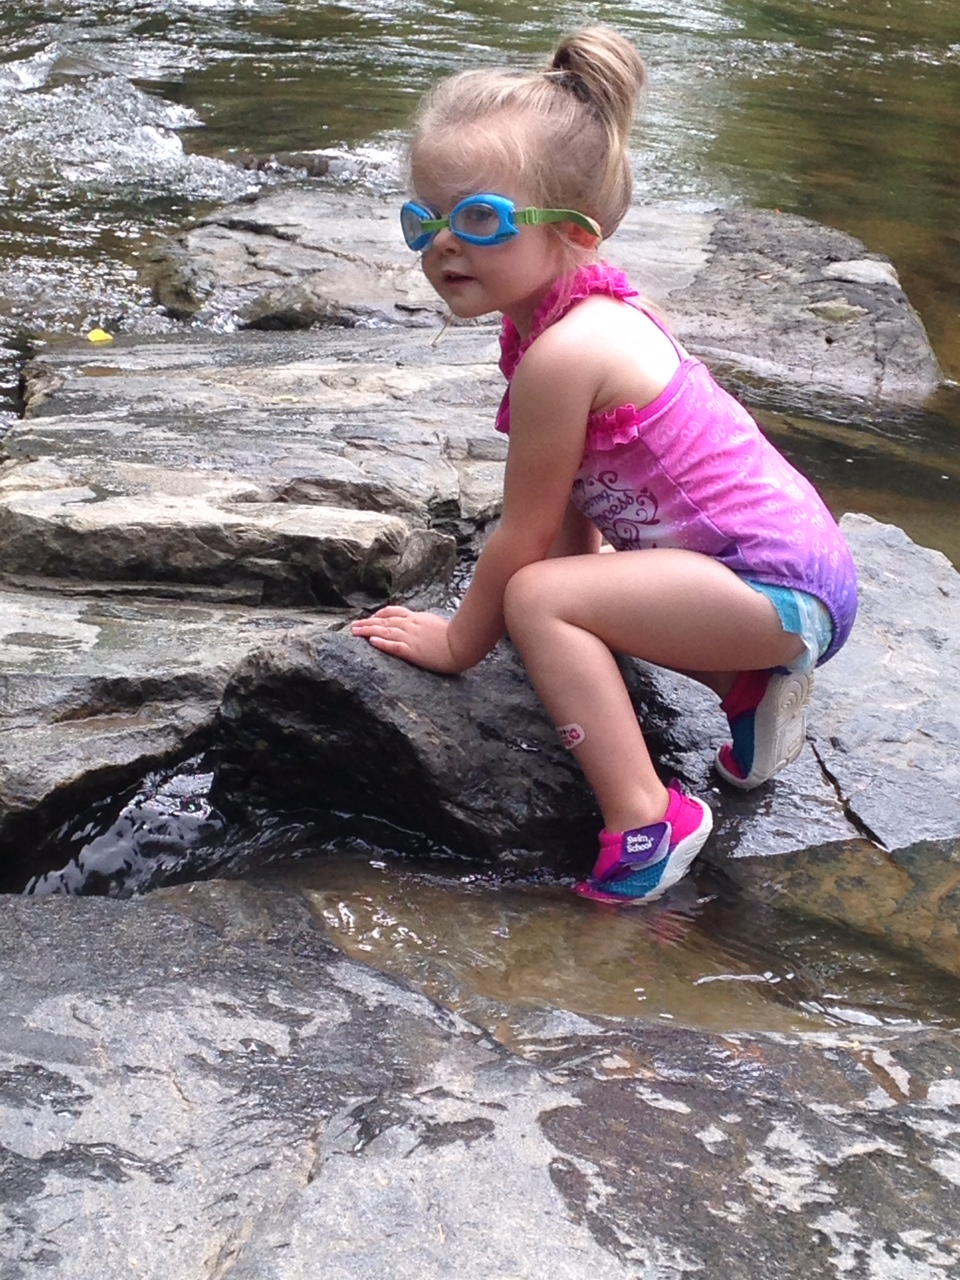 Reagan Peavy, daughter of Rich & Kristan, has a great time in the Watauga River at Valle Crucis Park.